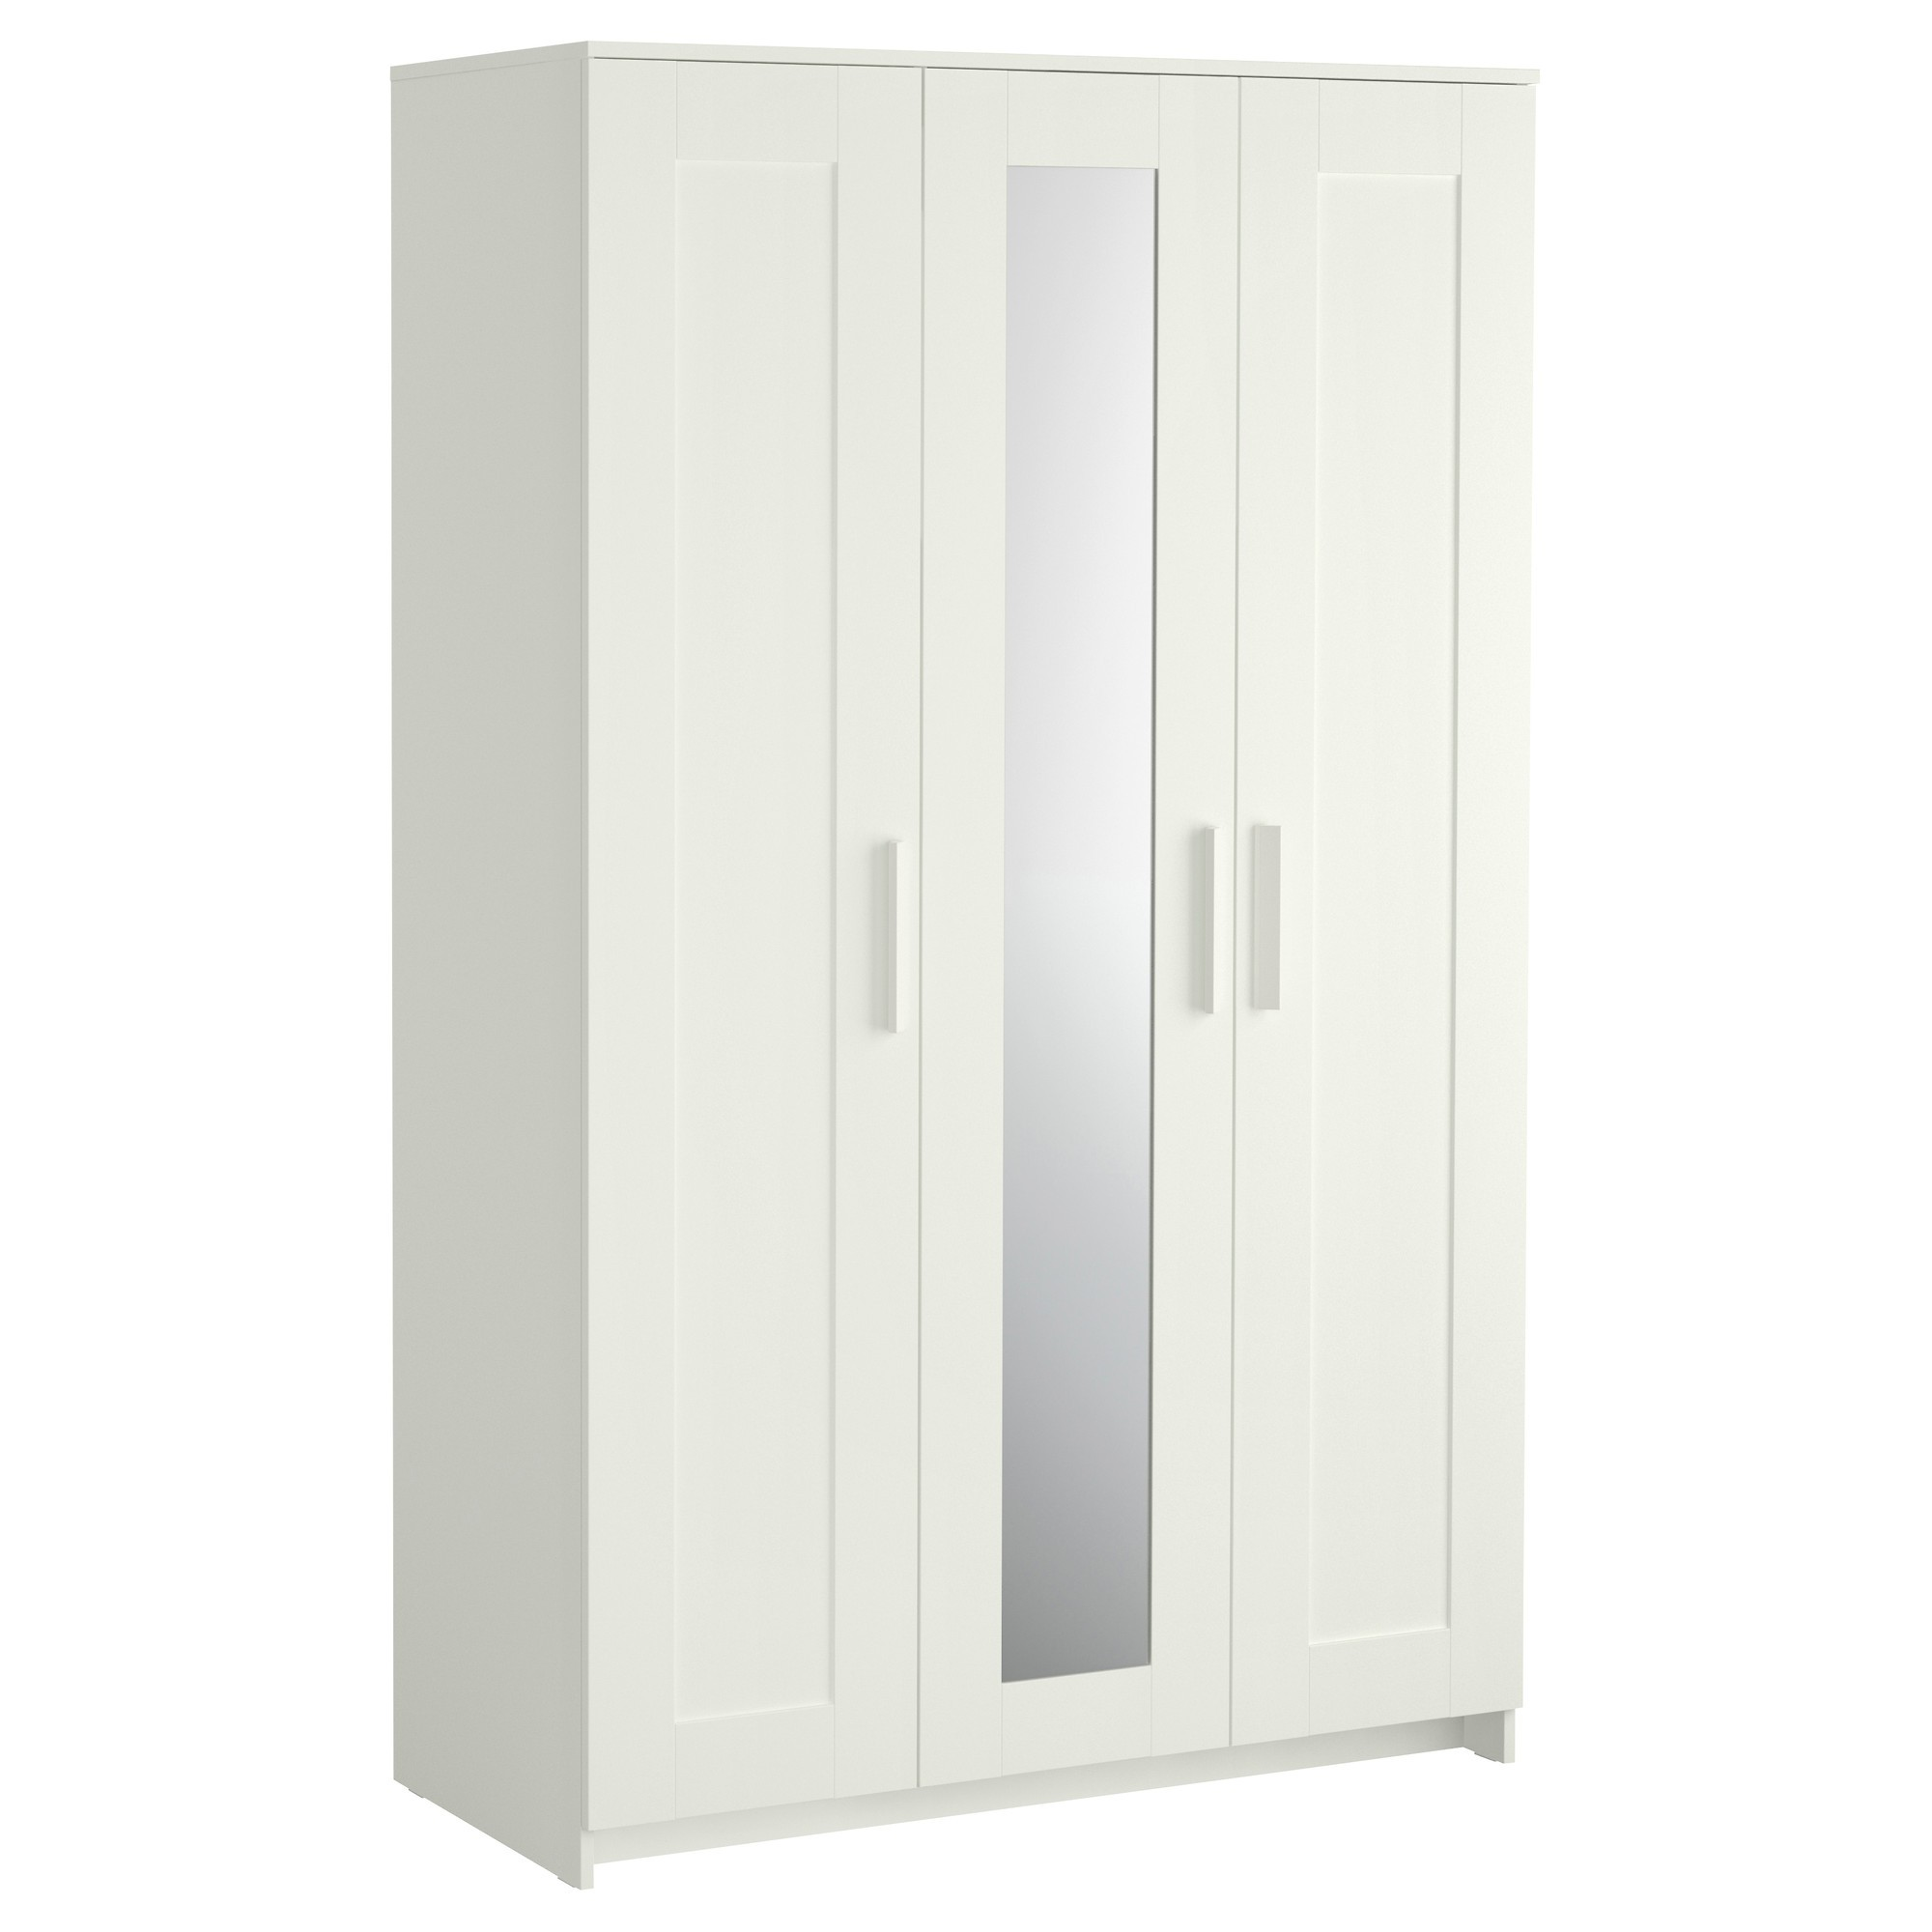 armoire vestiaire ikea jewelry armoires ikea foter armoire casier metal ikea with armoire. Black Bedroom Furniture Sets. Home Design Ideas